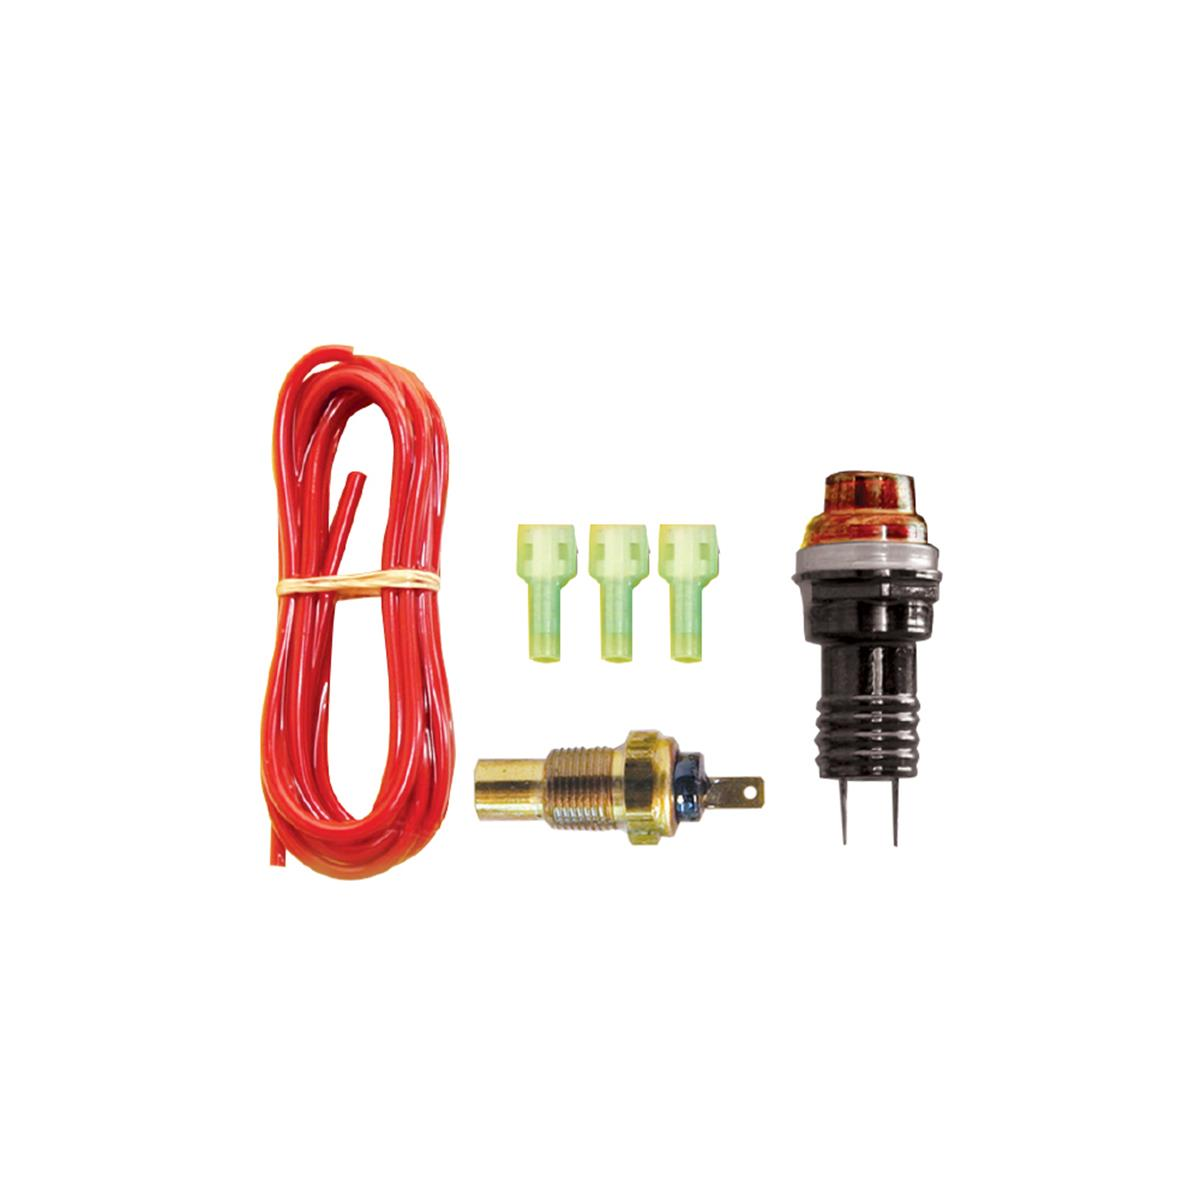 "Gagelites Warning Light Kit - 230º Water Temp 1/2"" NPT"